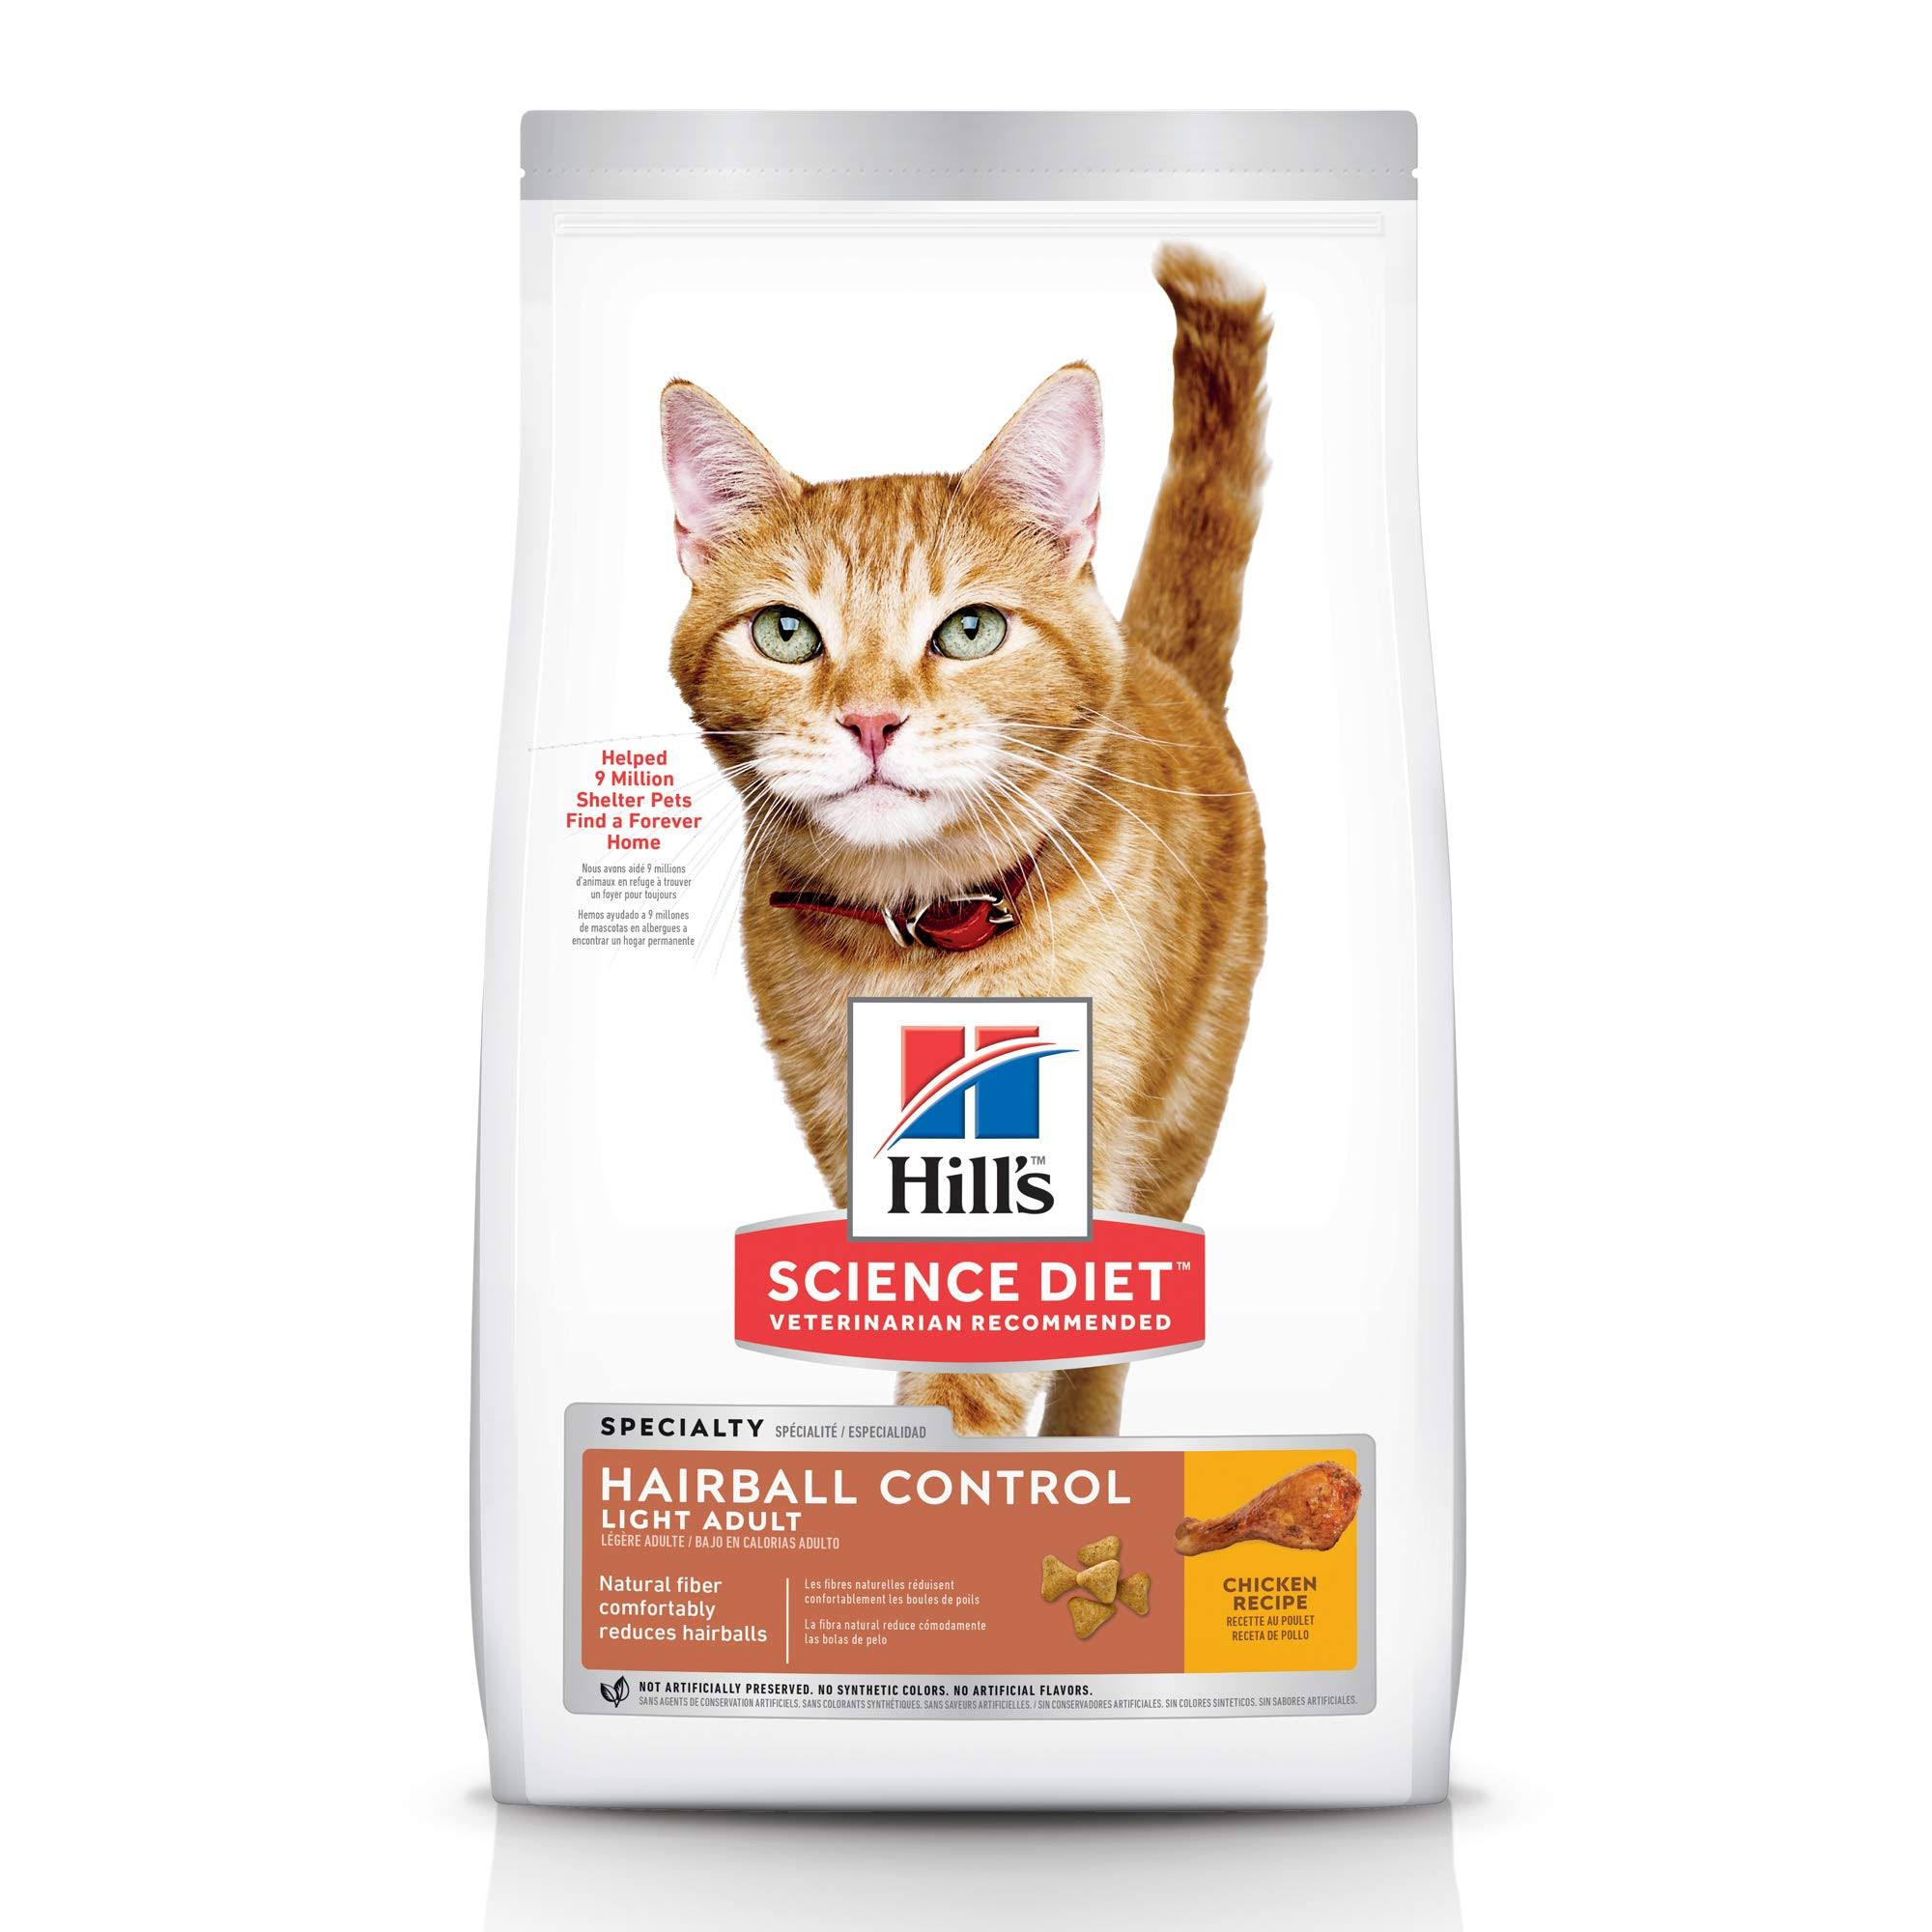 Hill's Science Diet Hairball Control Adult Dry Cat Food - Light, Chicken Recipe, 7lbs